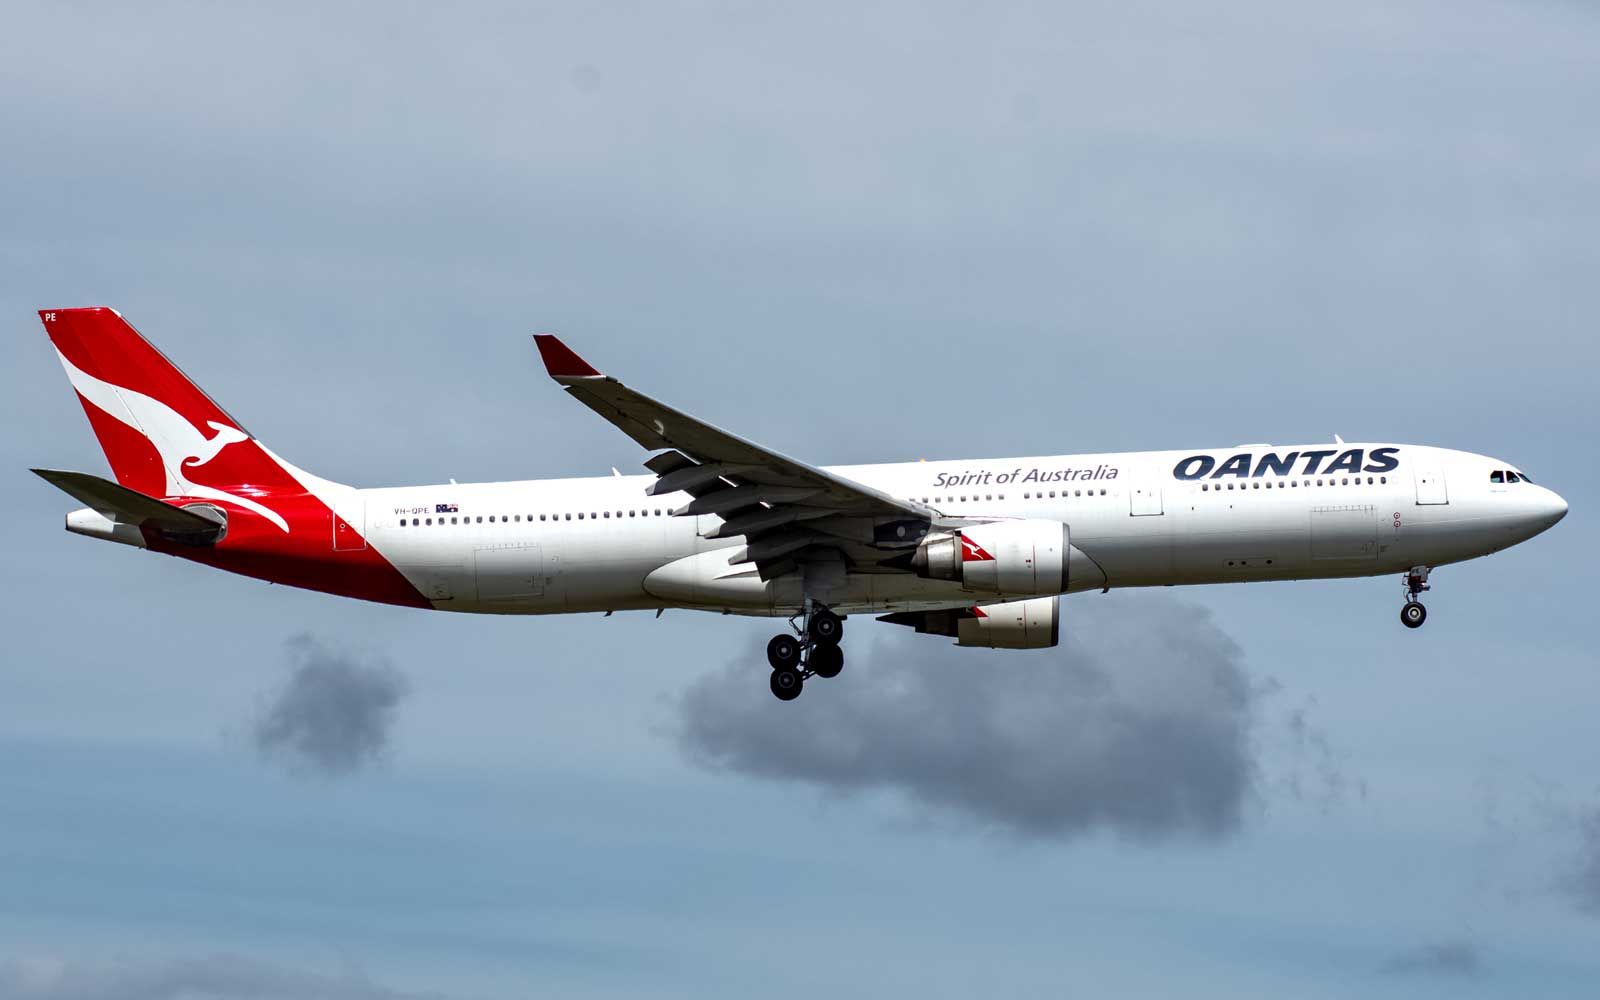 This Qantas Flight Will Produce Zero Landfill Waste — and Passengers Probably Won't Even Notice a Difference